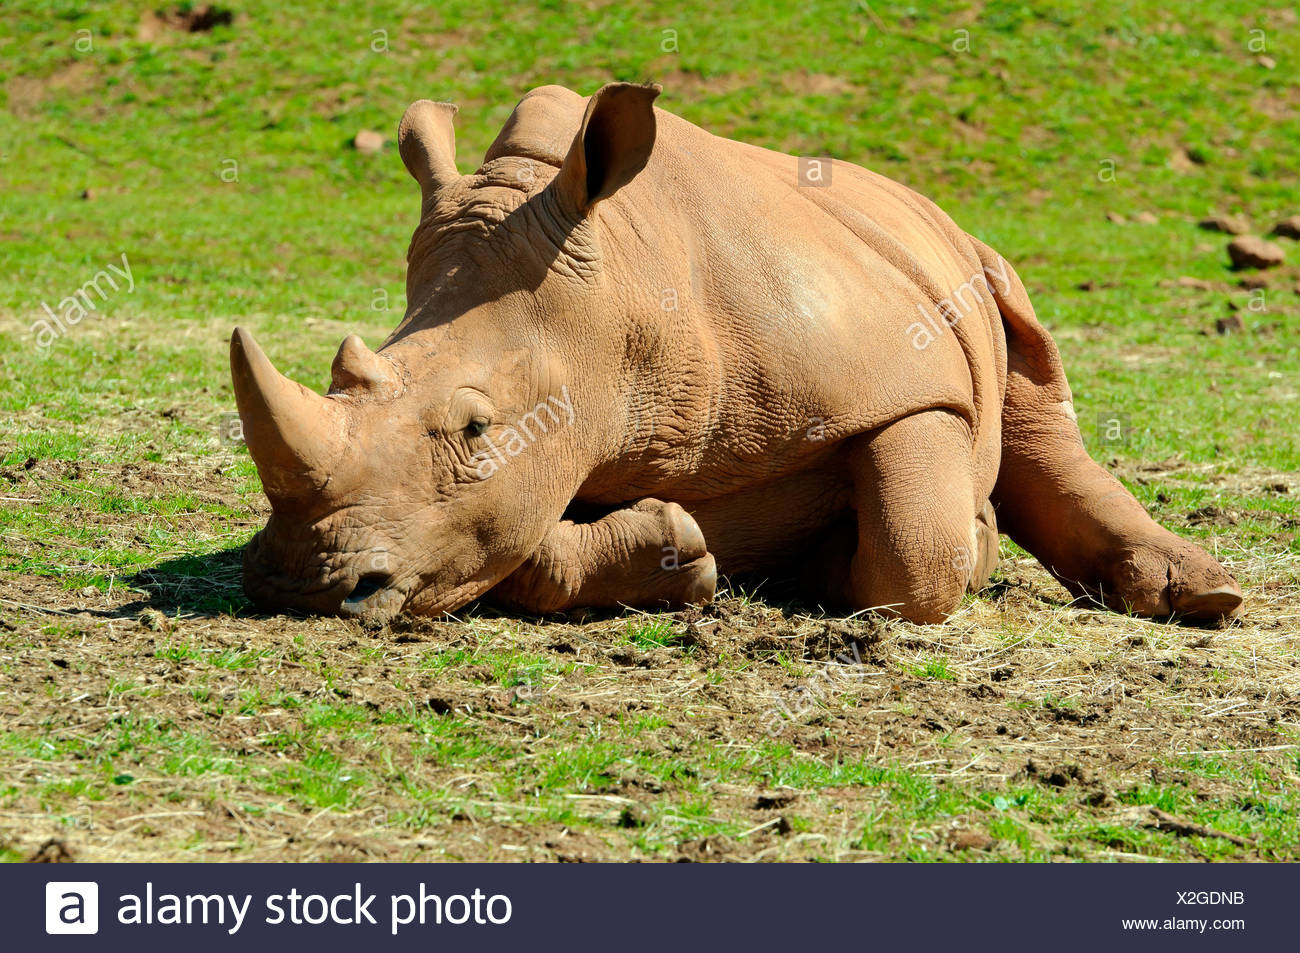 big large enormous extreme powerful imposing immense relevant animal mammal brown brownish brunette horn largely wildlife - Stock Image